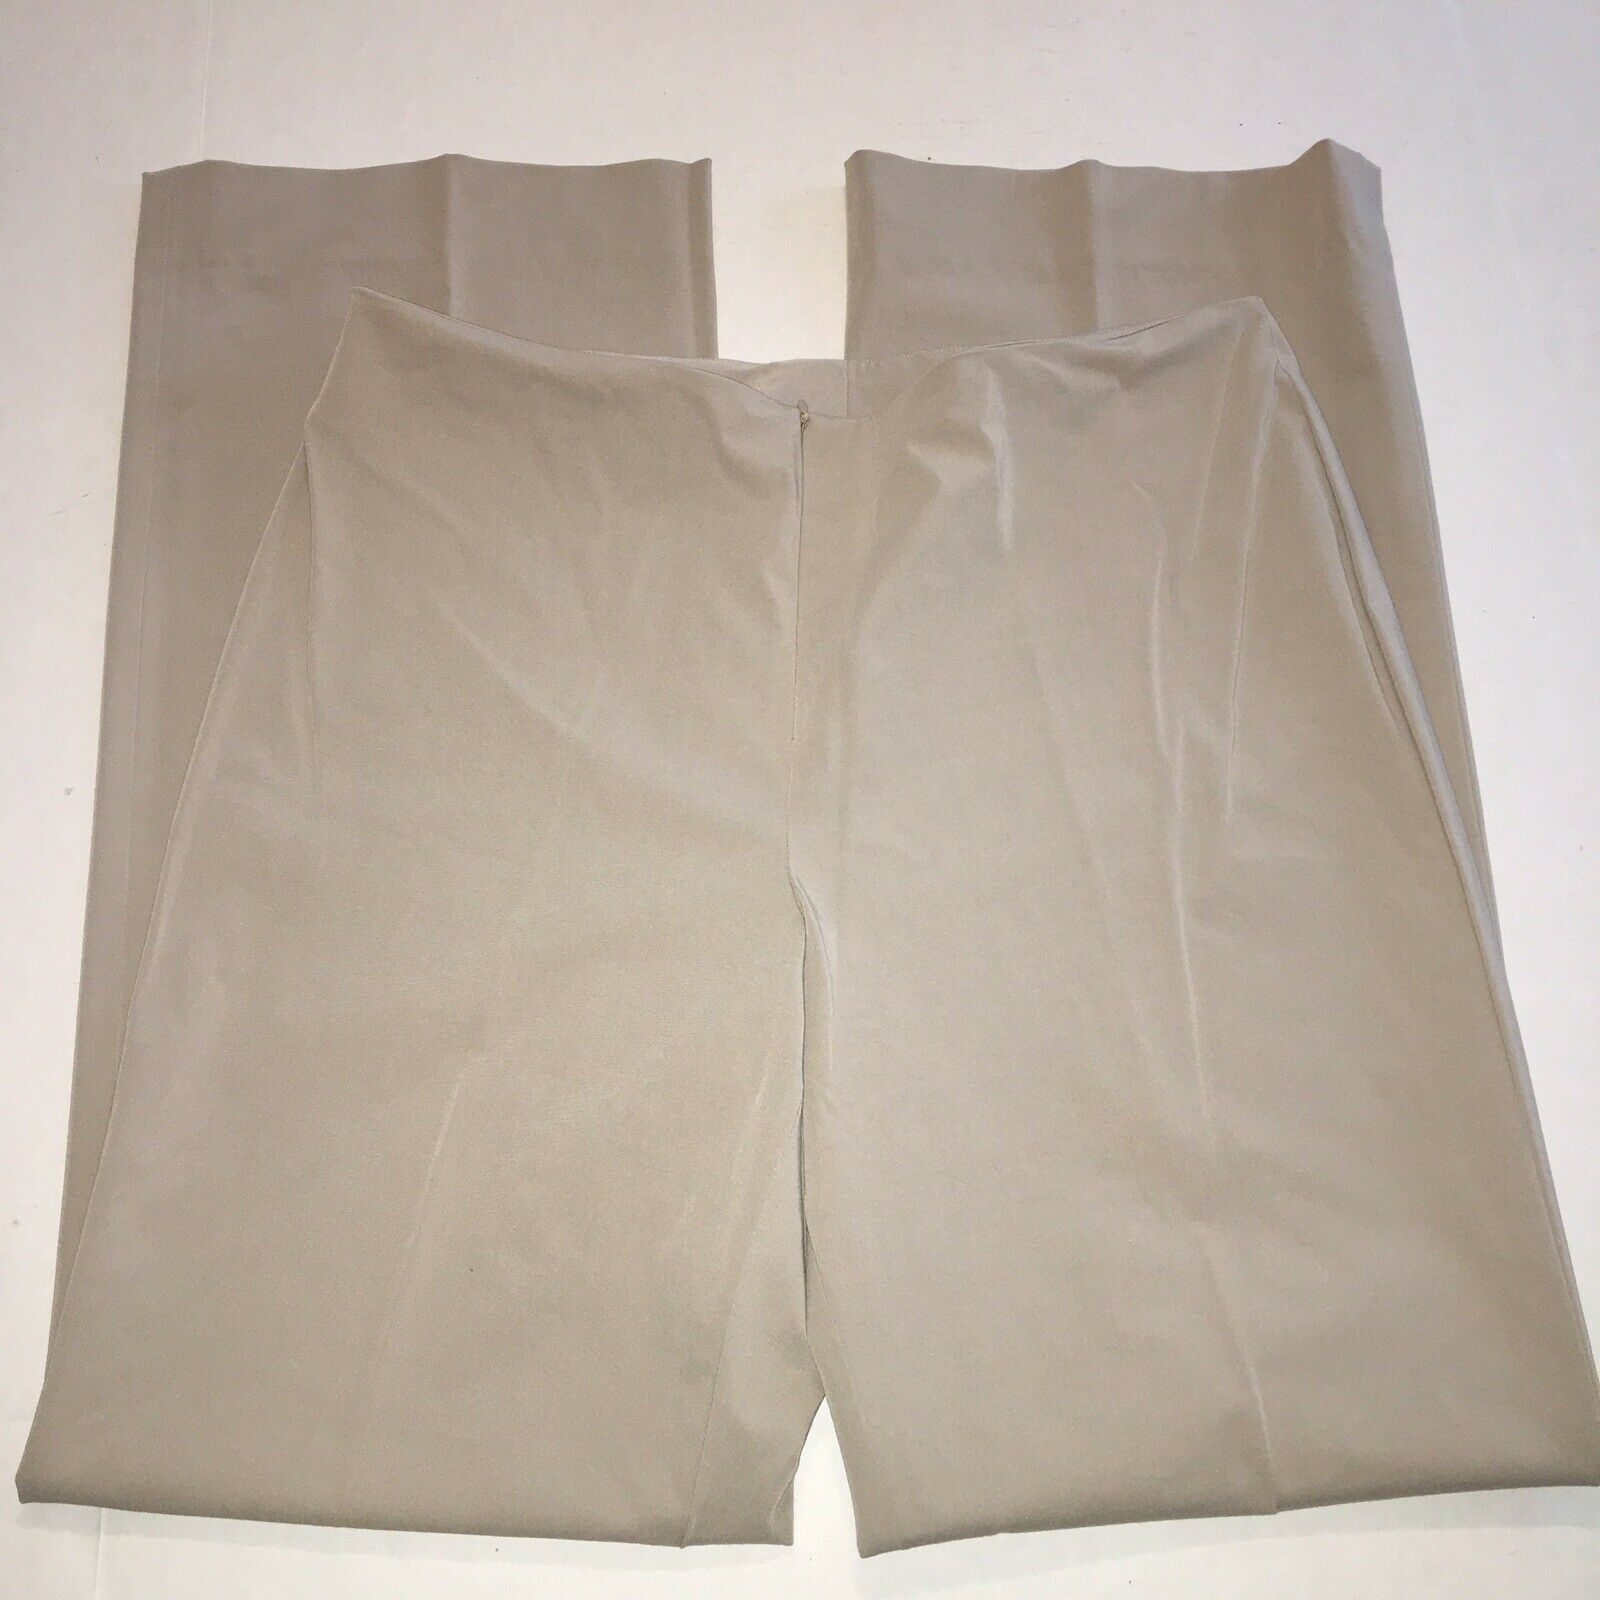 Doncaster Collection Stretch Pants sz 14 34X33 Stone Flat Front